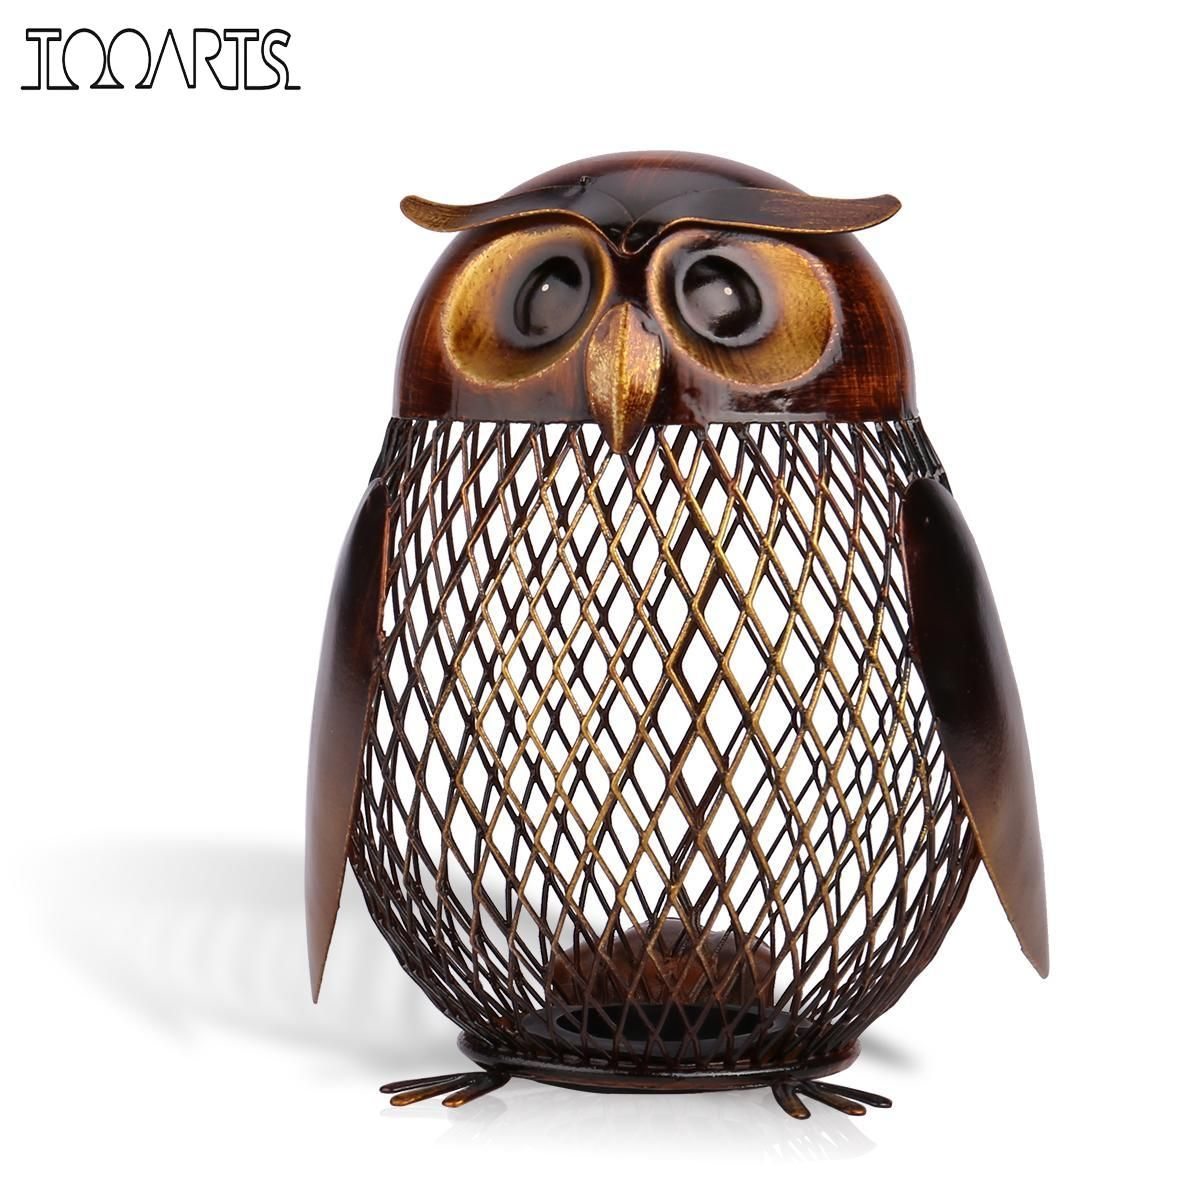 Tooarts New Year Gift Money Box Owl Shaped Metal Piggy Coin Bank Money Saving Box Home Decor Figurines Craft Gift For Kids